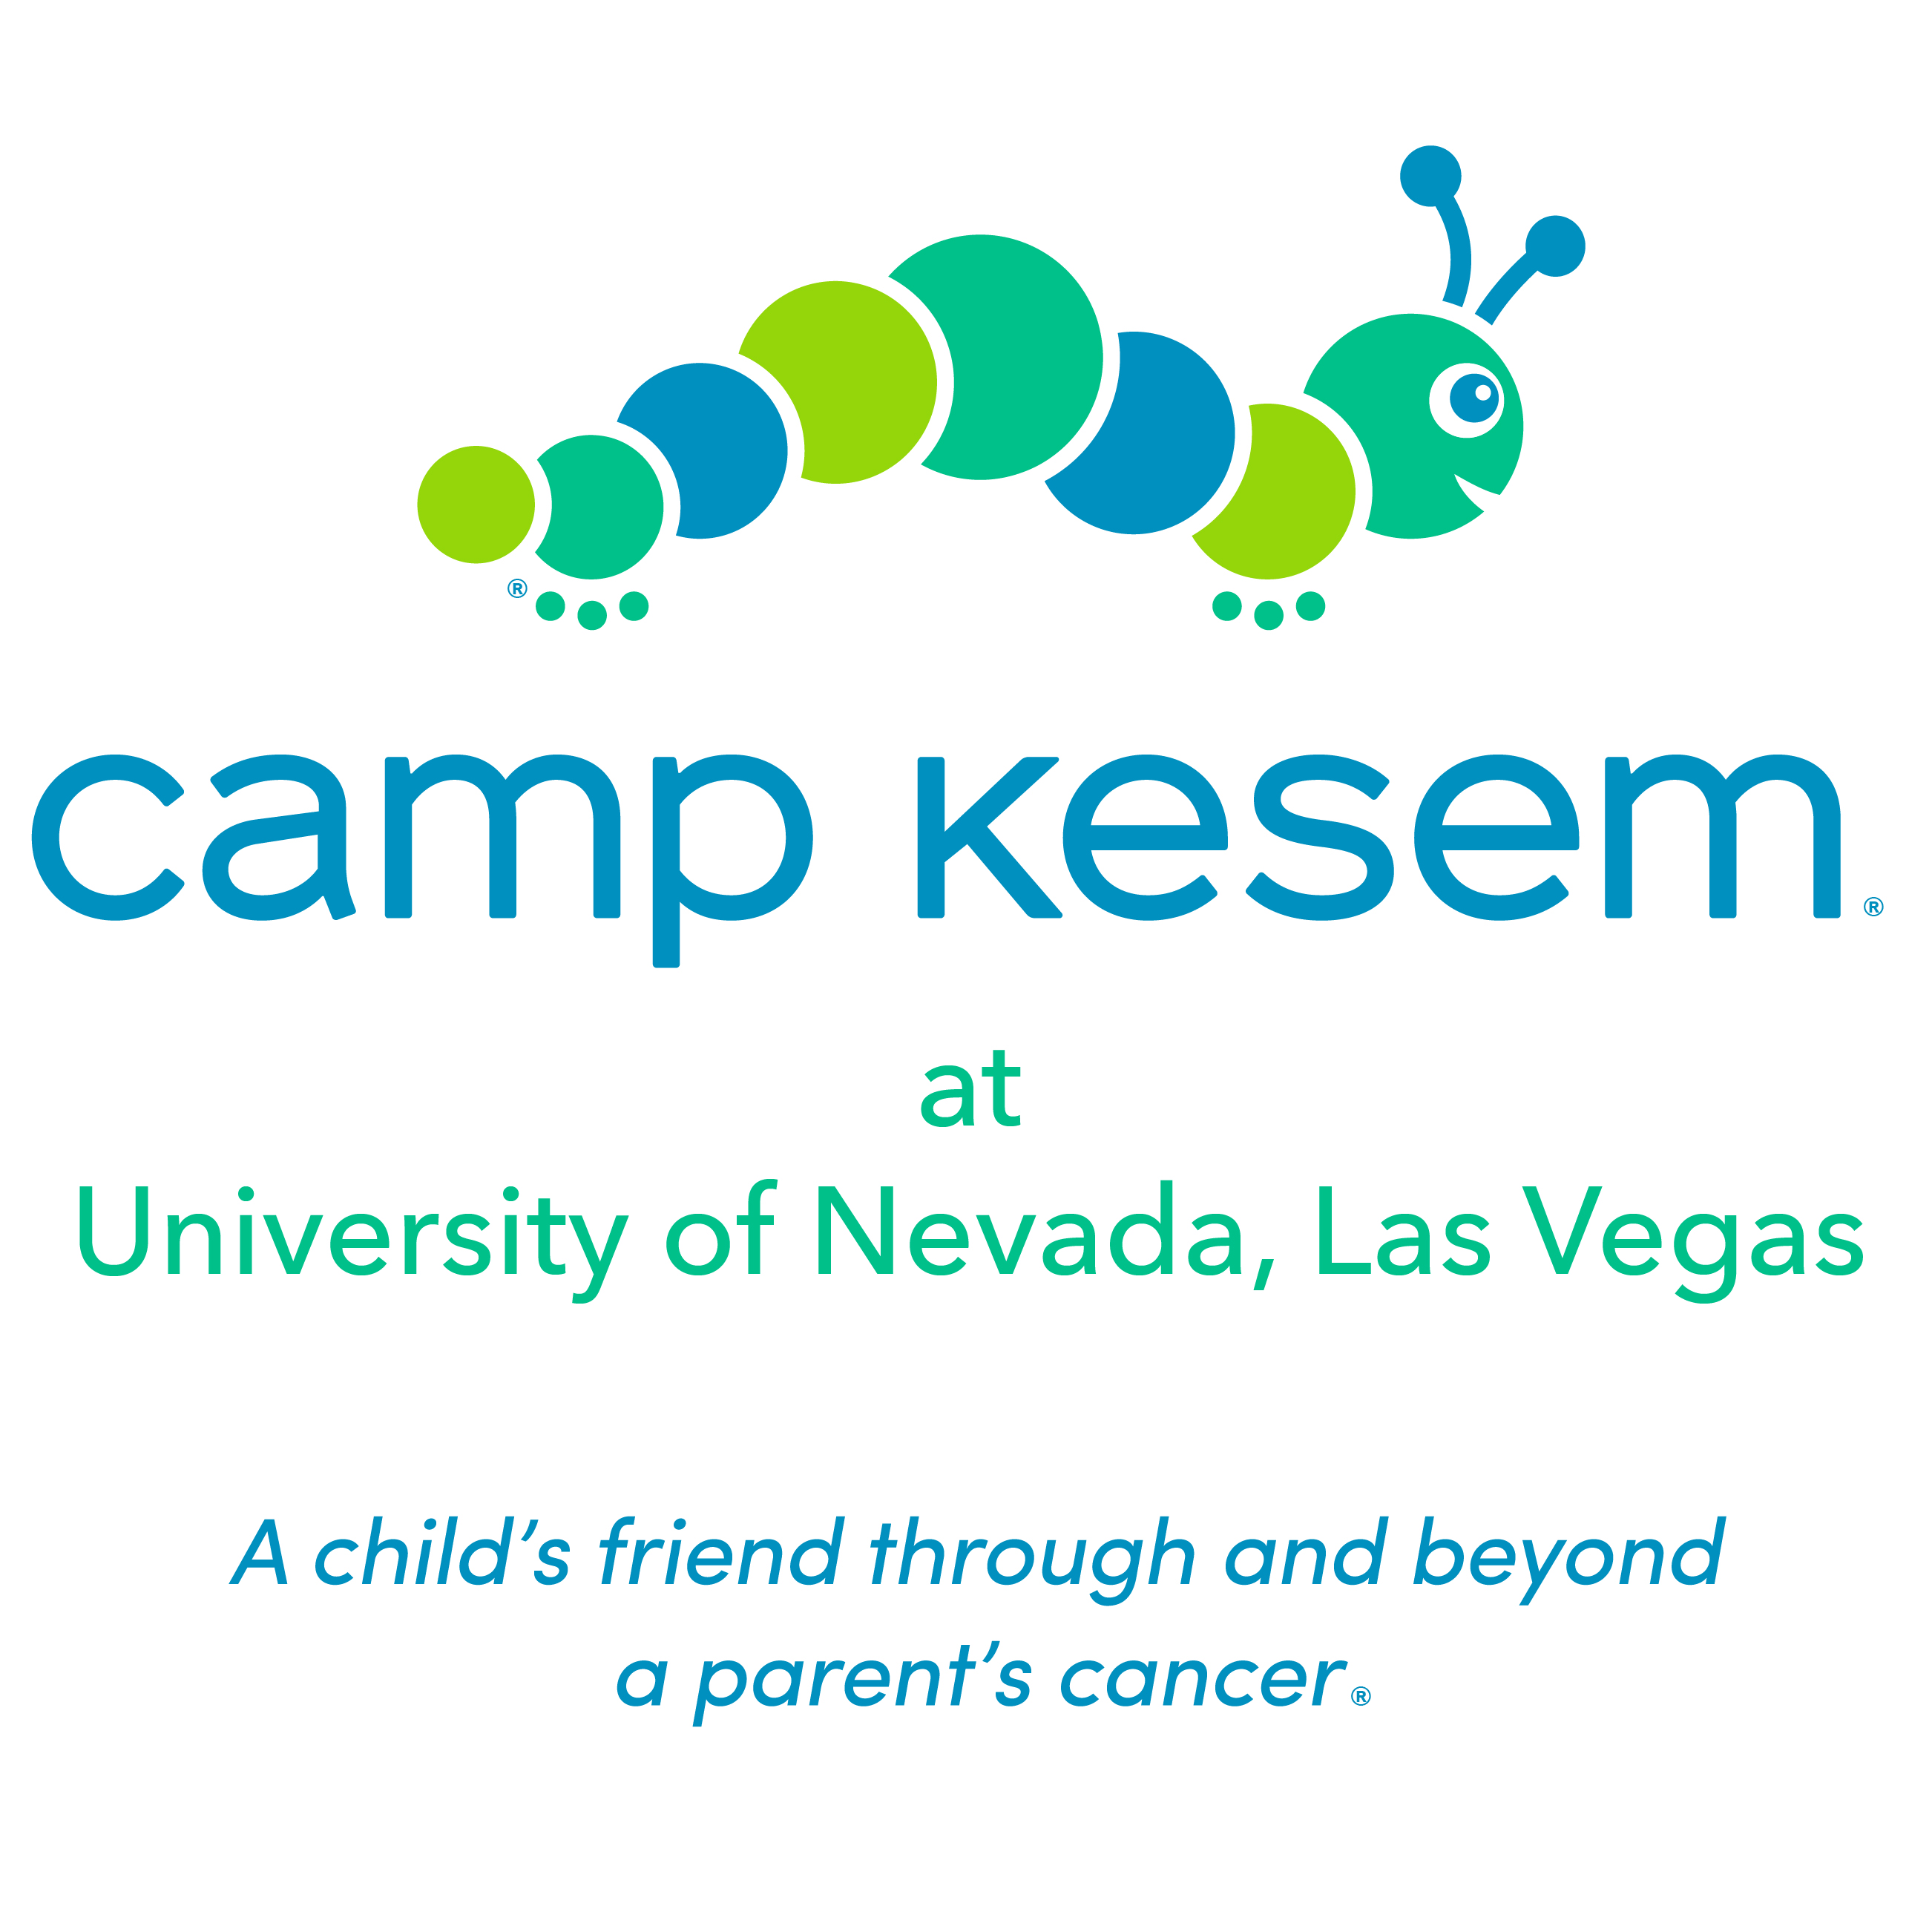 Camp Kesem at University of Nevada, Las Vegas